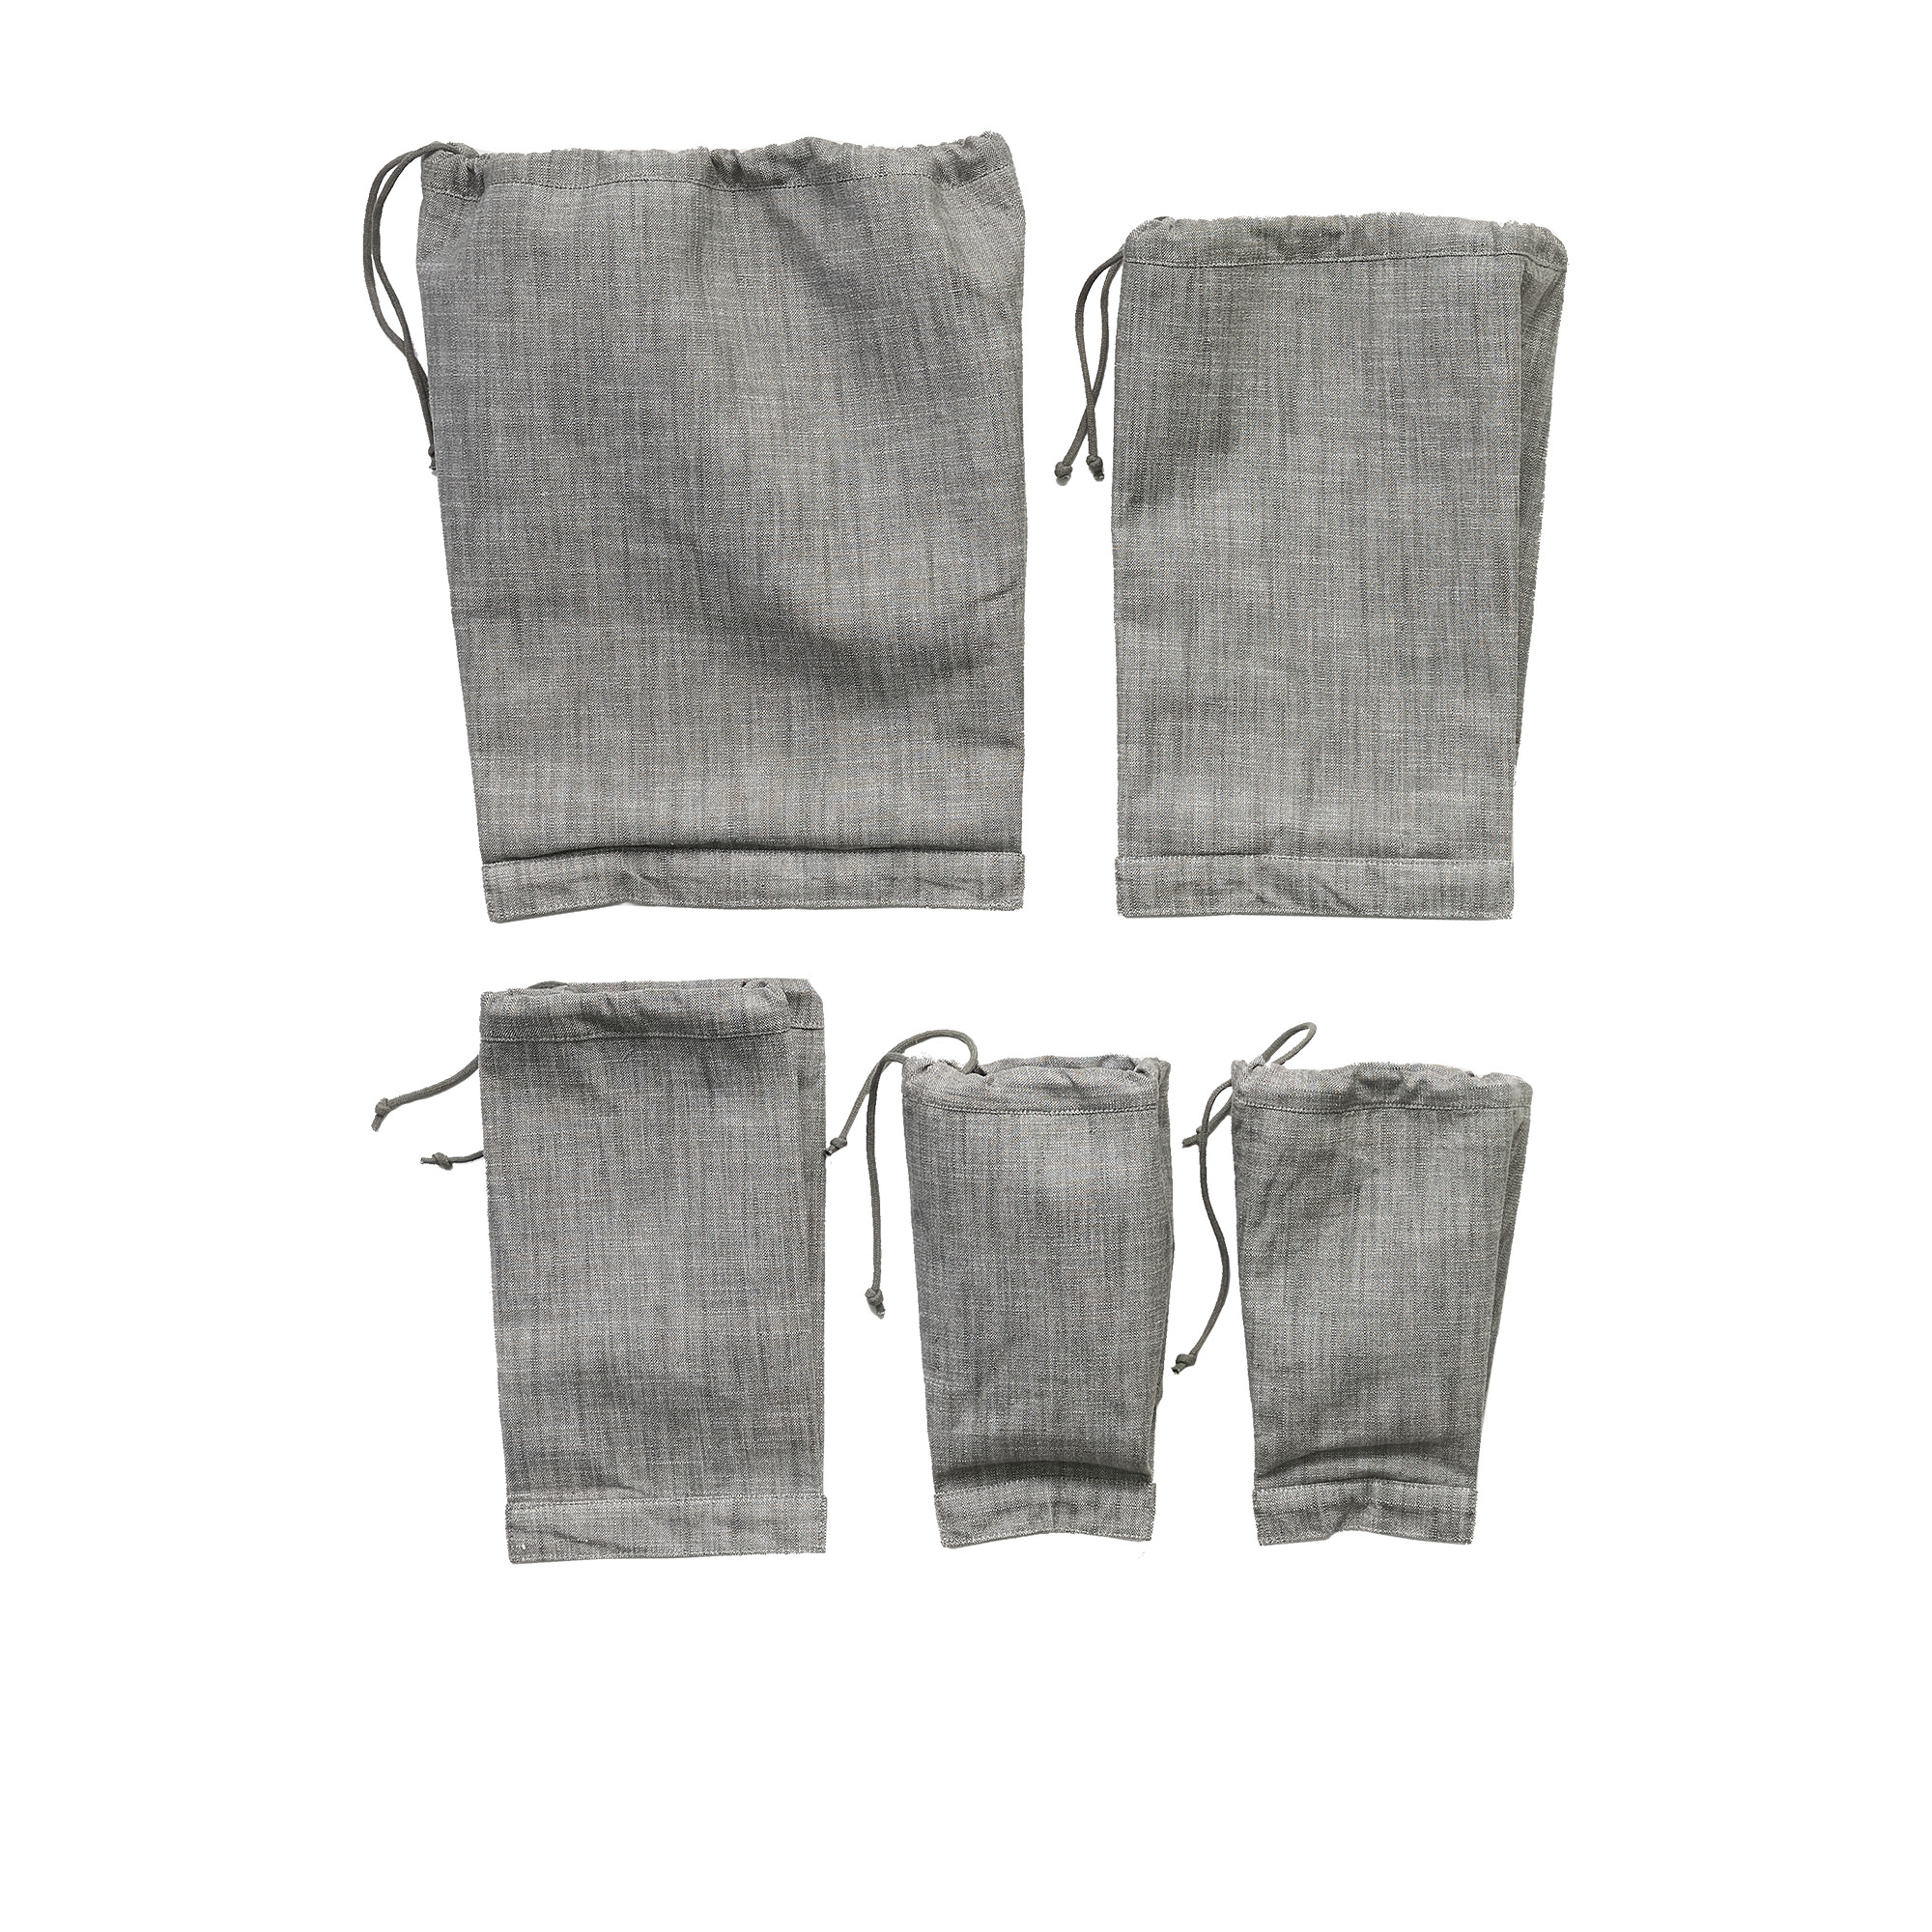 Salisbury & Co Essentials 5pc Cotton Produce Bags Large Charcoal